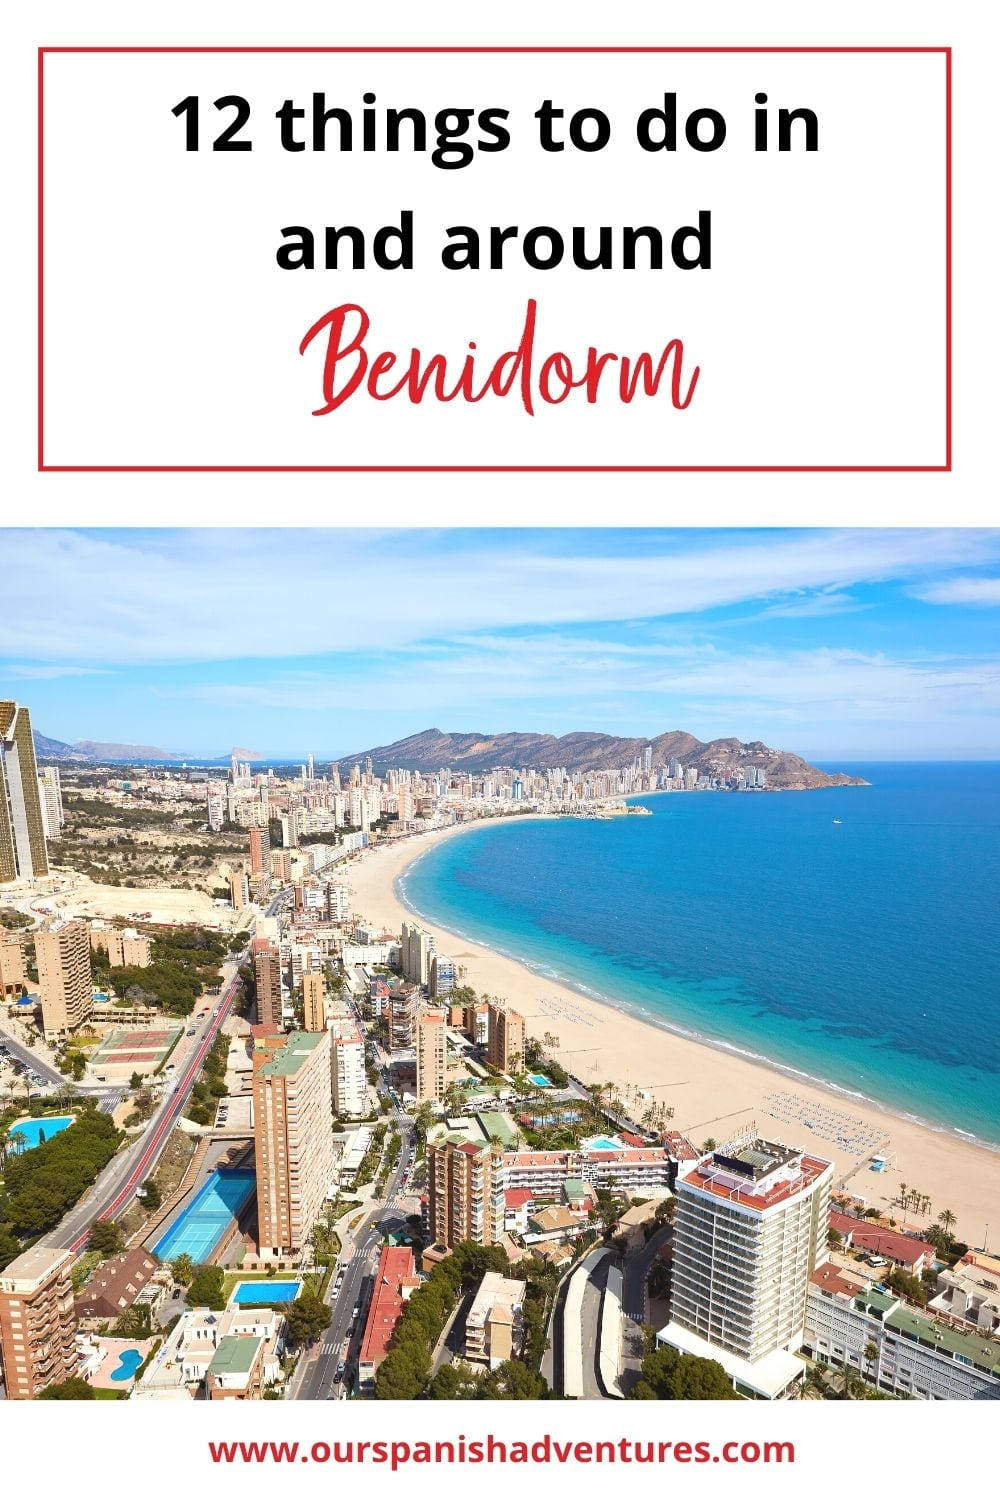 12 things to do in and around Benidorm | Our Spanish Adventures